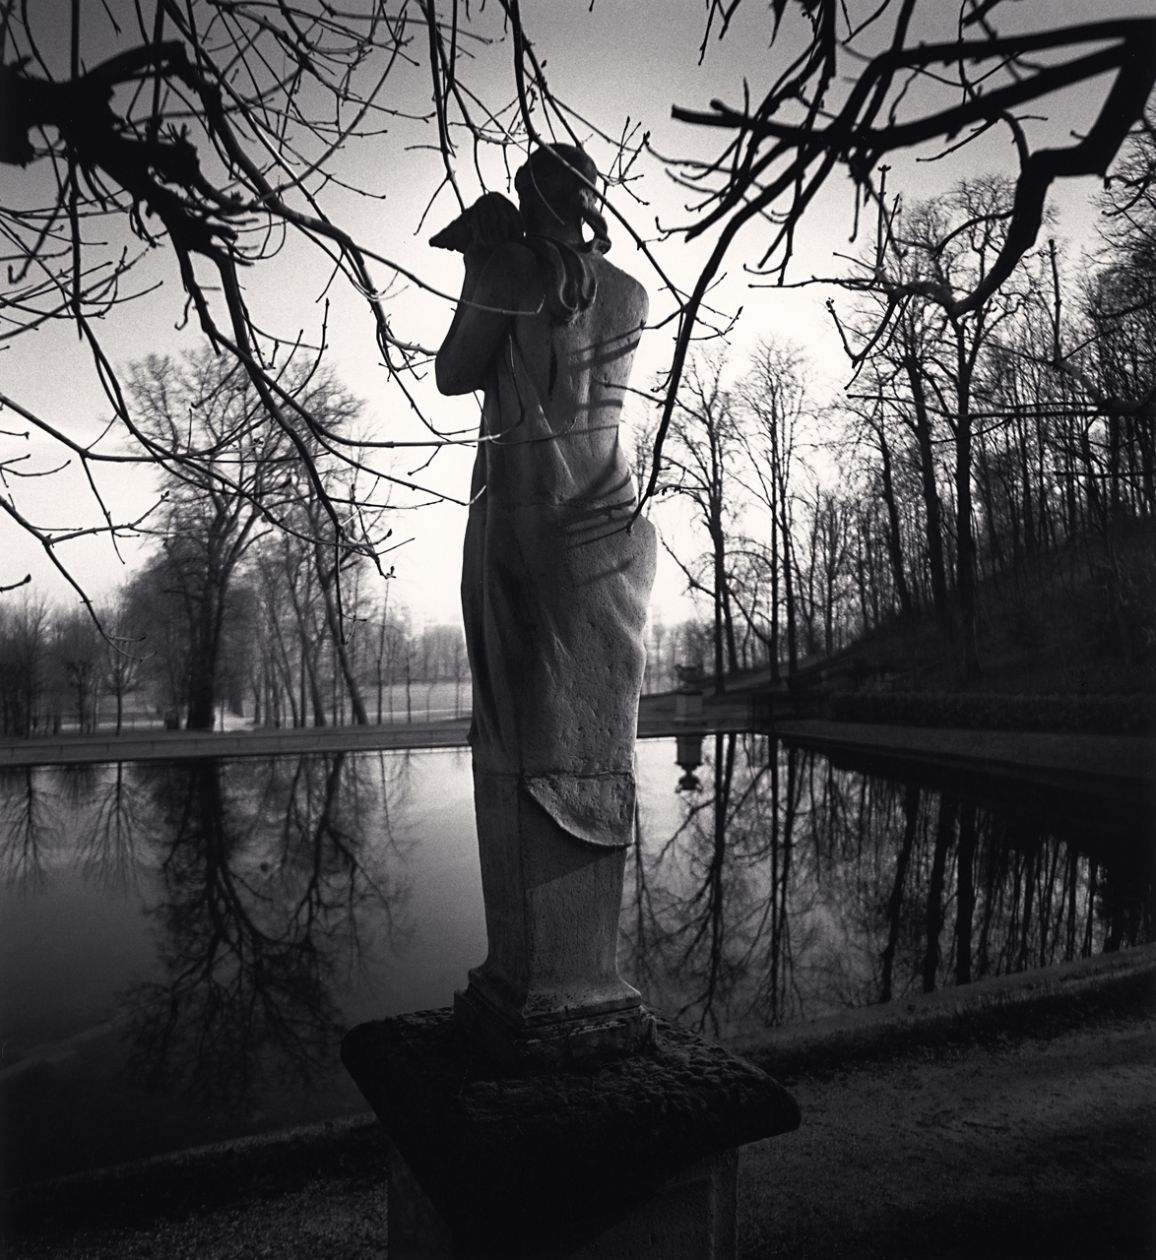 Contemplation, Parc Saint Cloud, France (1996) by Michael Kenna